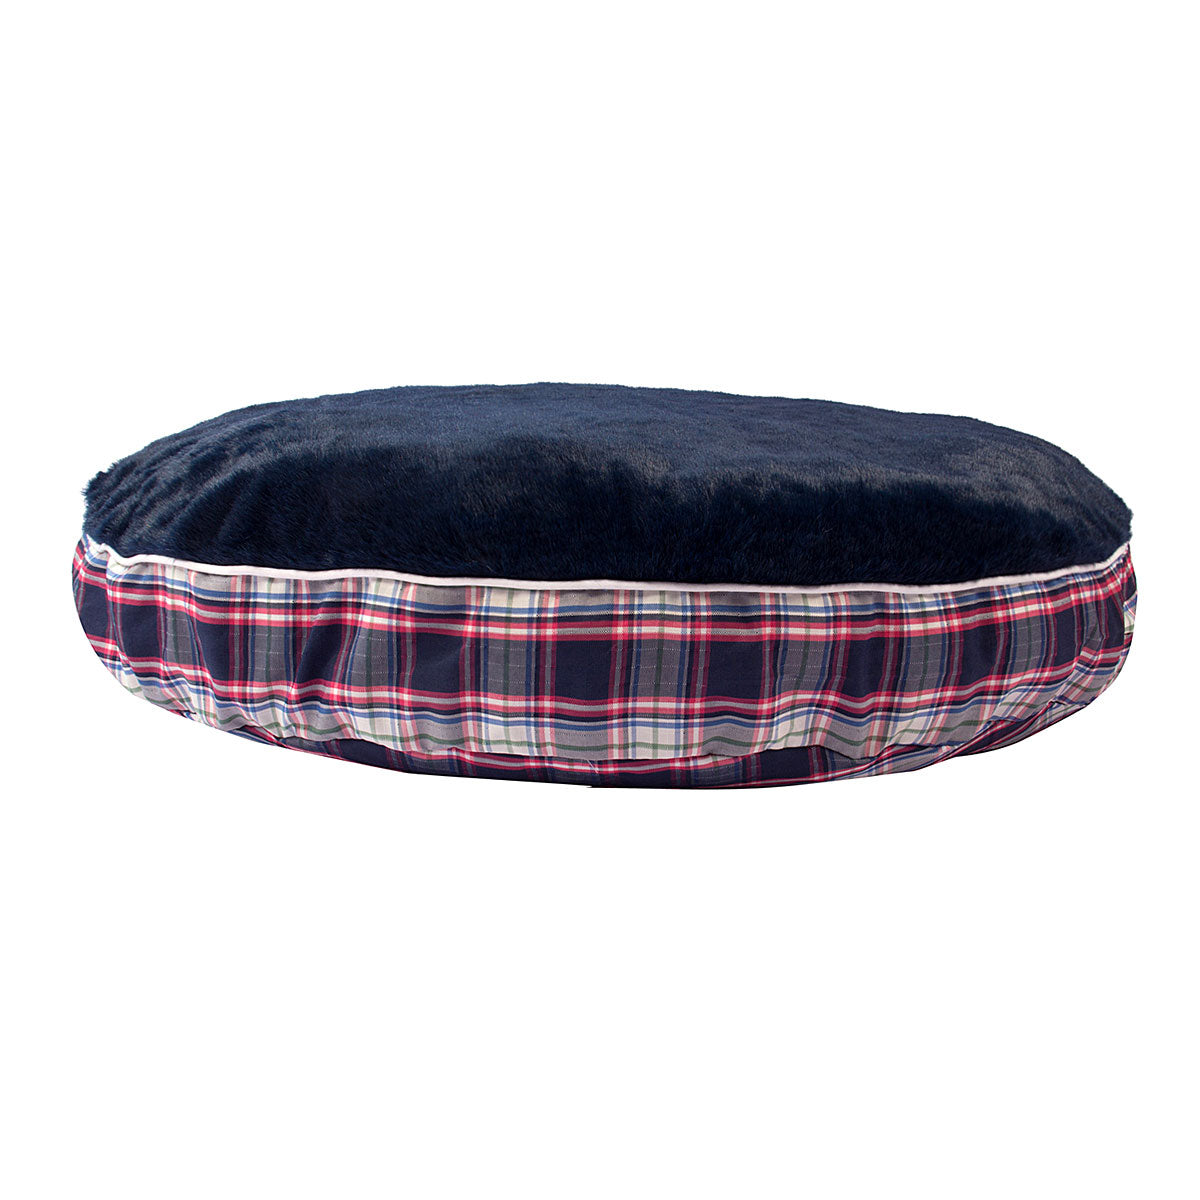 Halo Amber Plaid Round Dog Bed_2782